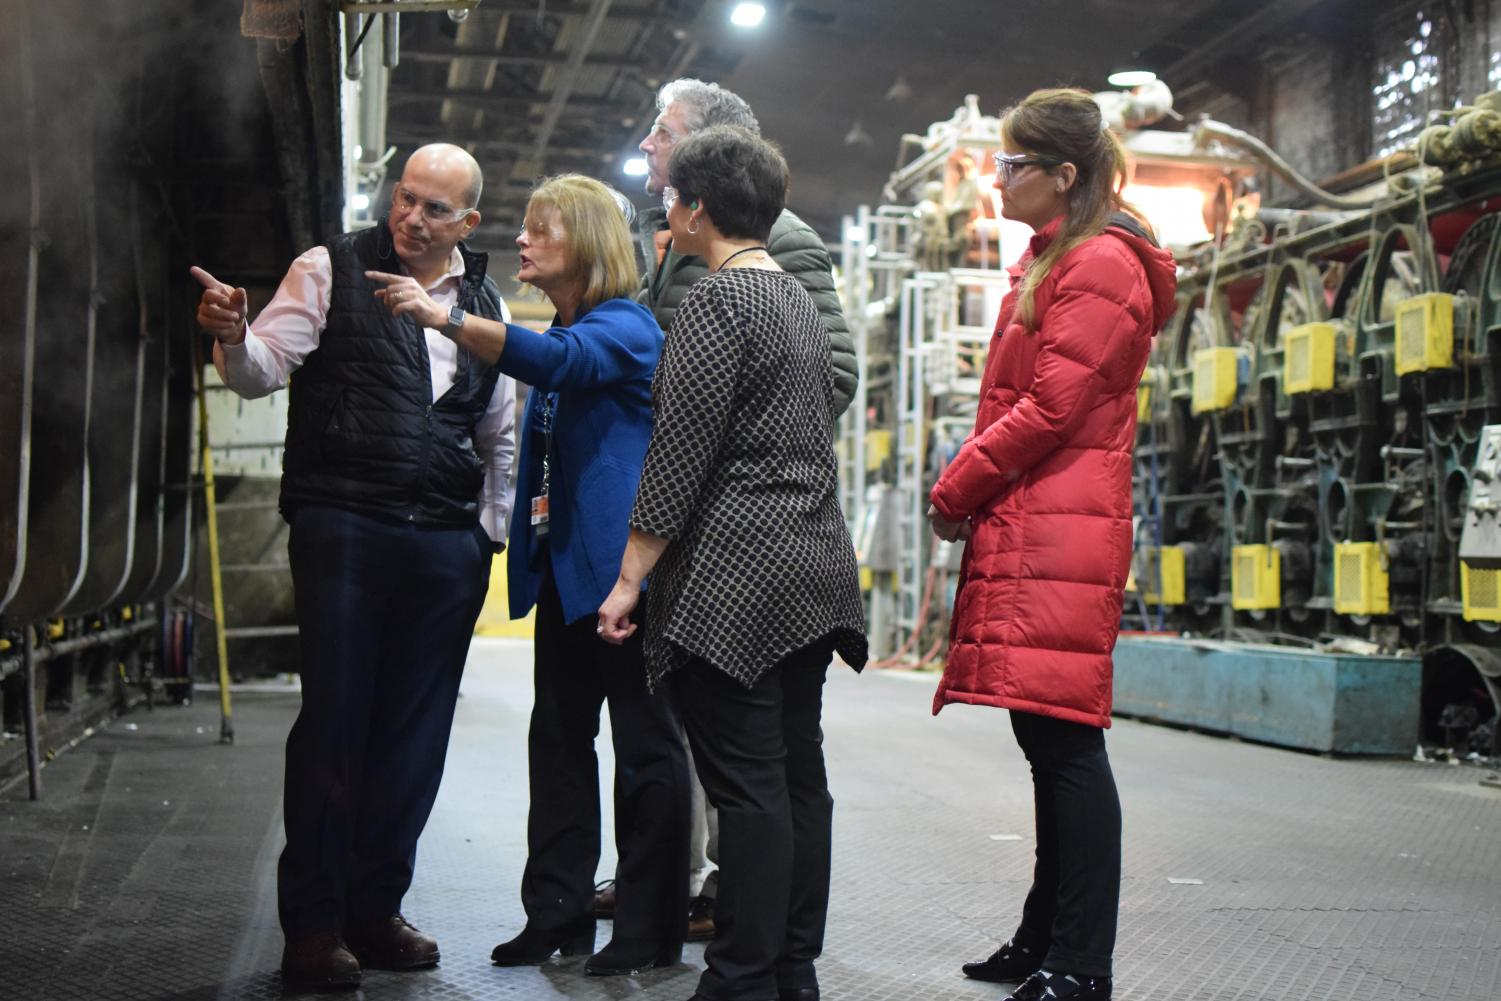 The American Eagle Paper Mill is one of the many businesses that indicate that good attendance is one thing they are looking for in new employees.  Here former Tyrone superintendent Cathy Harlow (second from left), teacher math teacher Chris Shedd, acting Superintendent Lesile Estep, and business teacher Angela Kline discuss the paper making process.